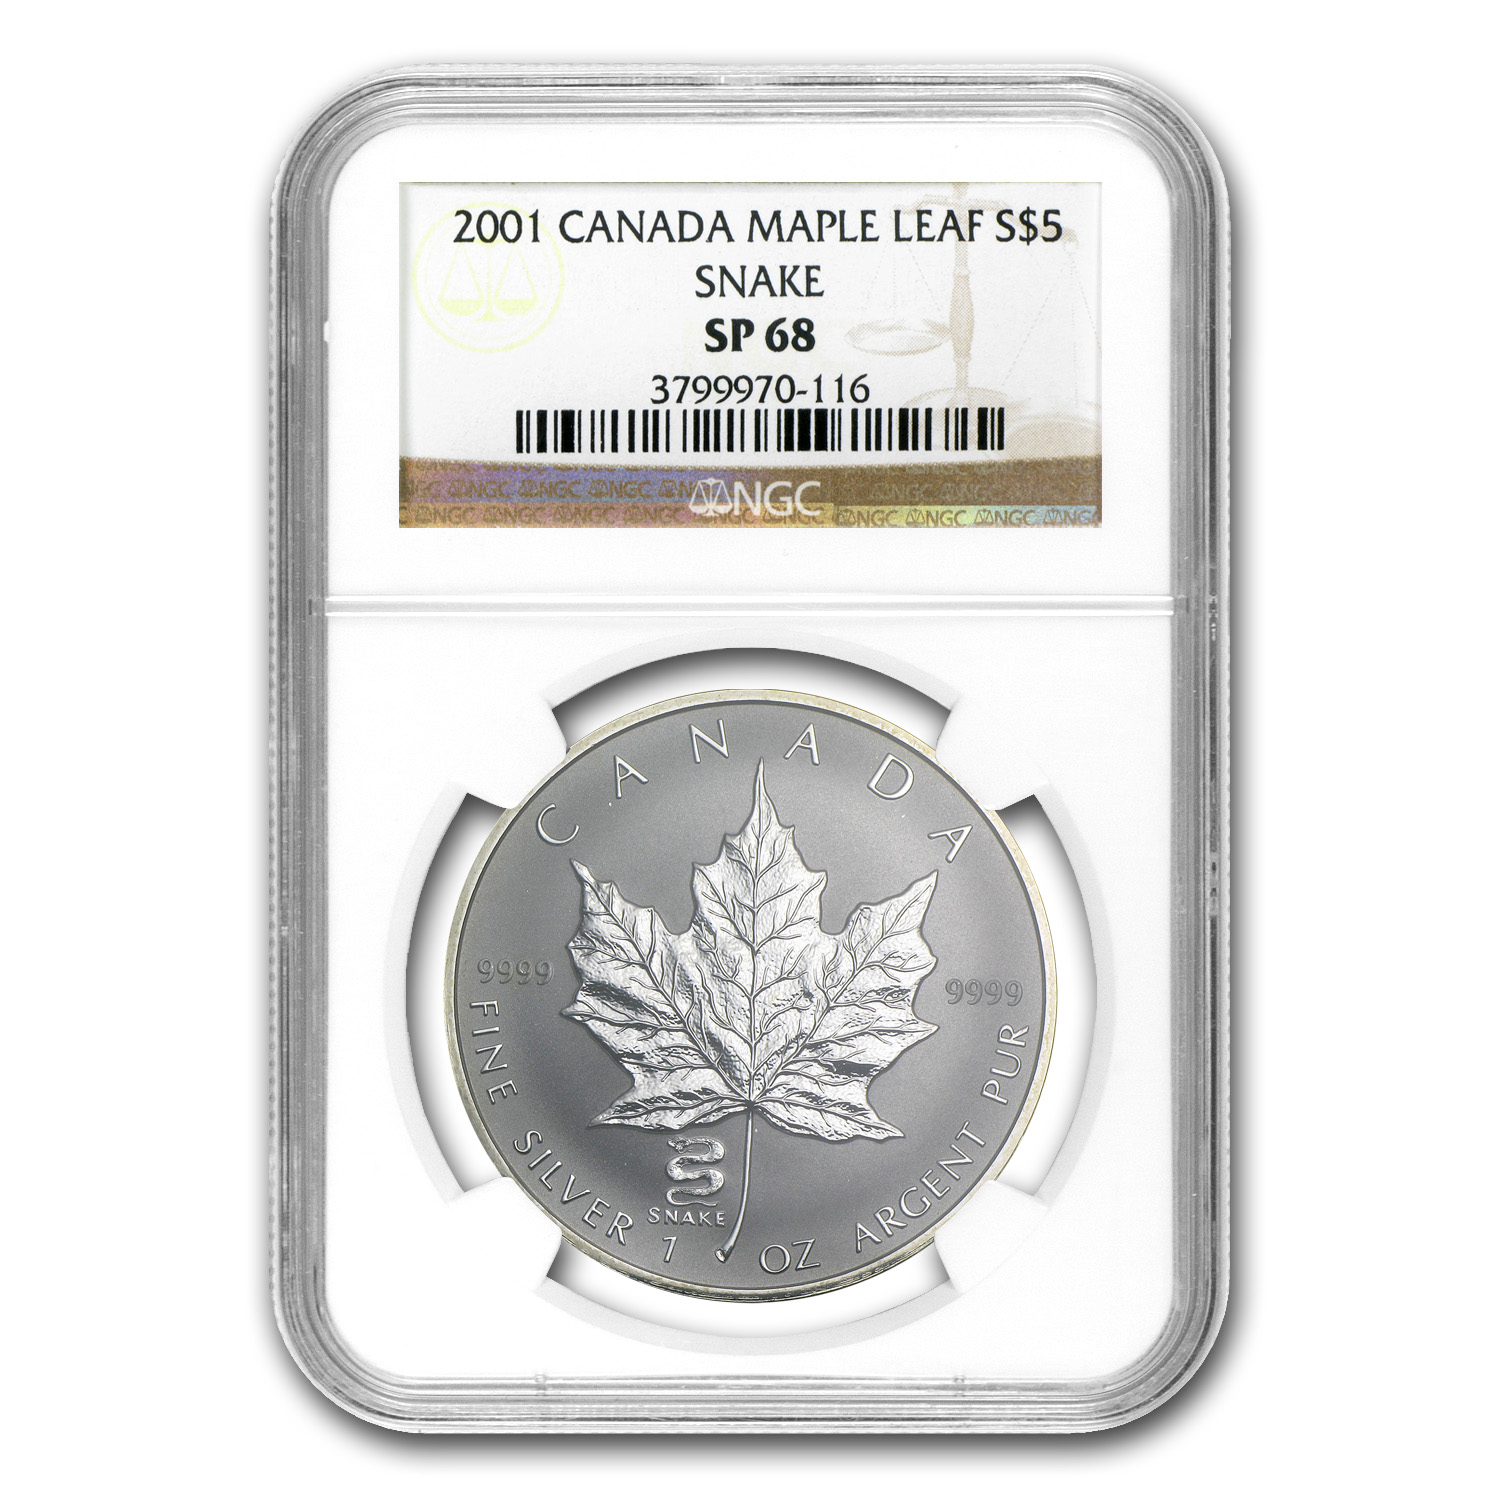 2001 1 oz Silver Canadian Maple Leaf Snake Privy - SP-68 NGC